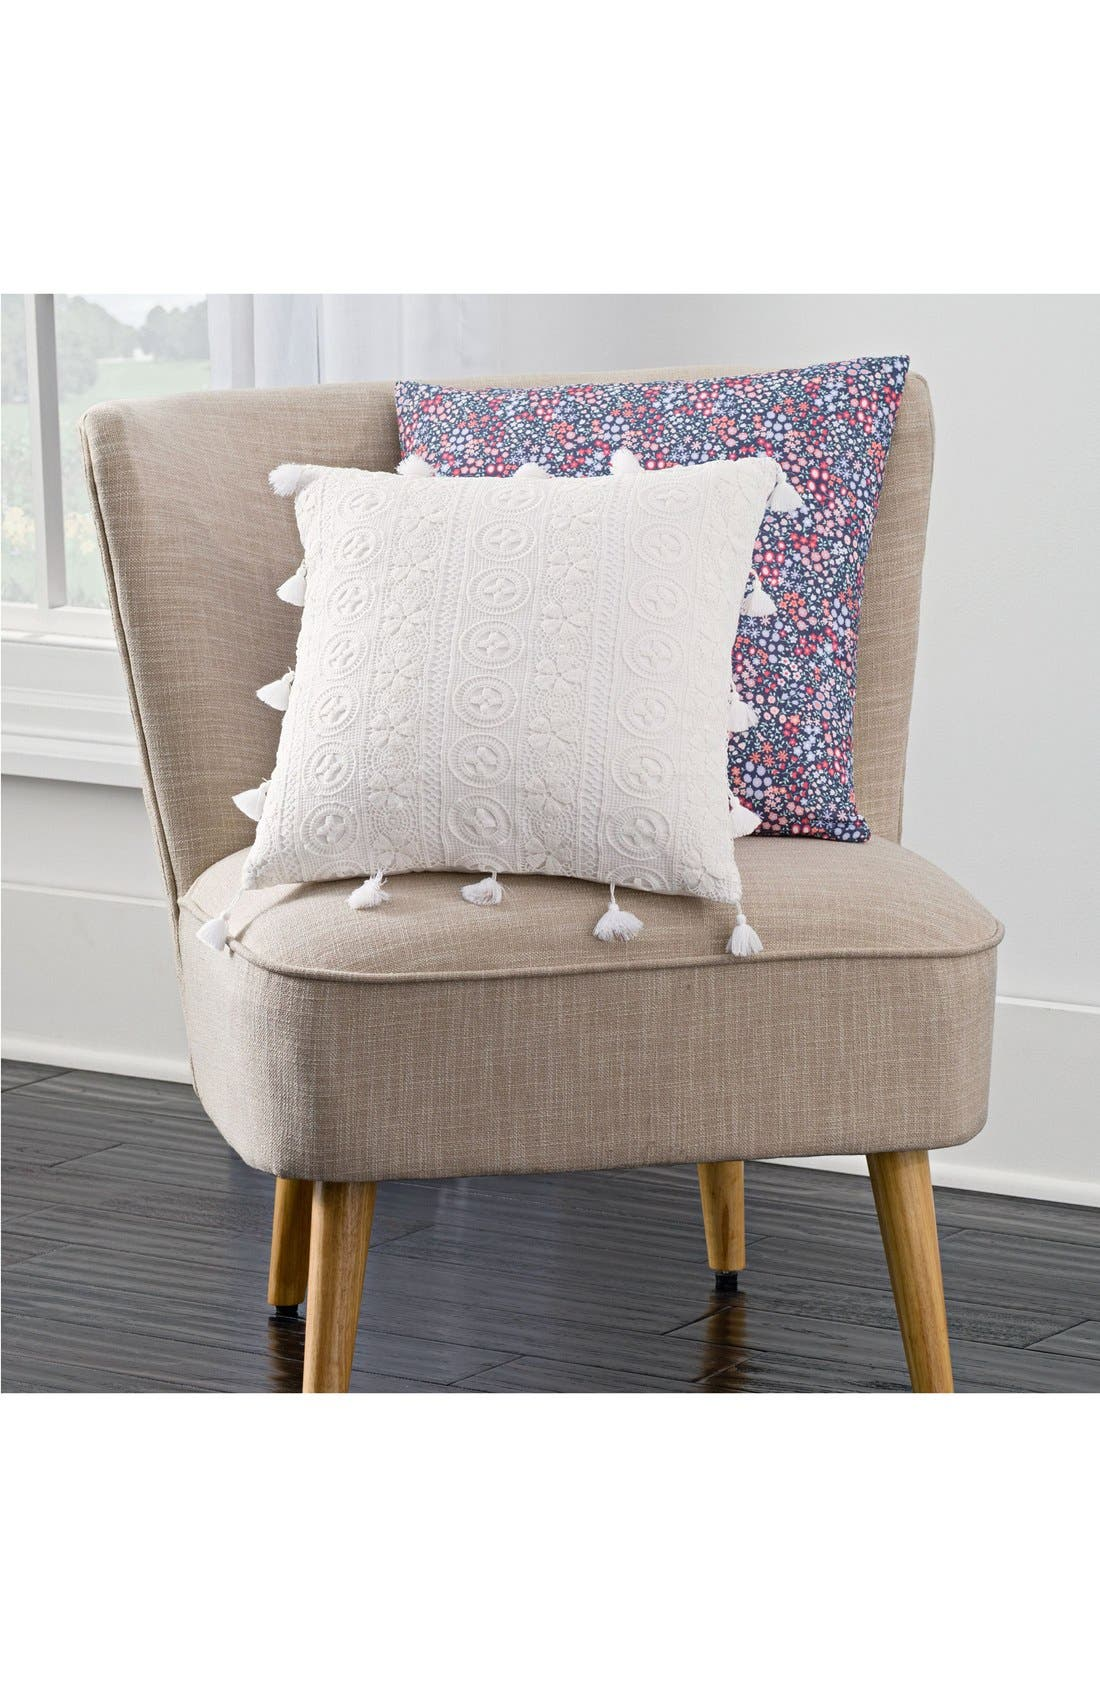 'Sketch' Floral Print Accent Pillow,                             Alternate thumbnail 2, color,                             600